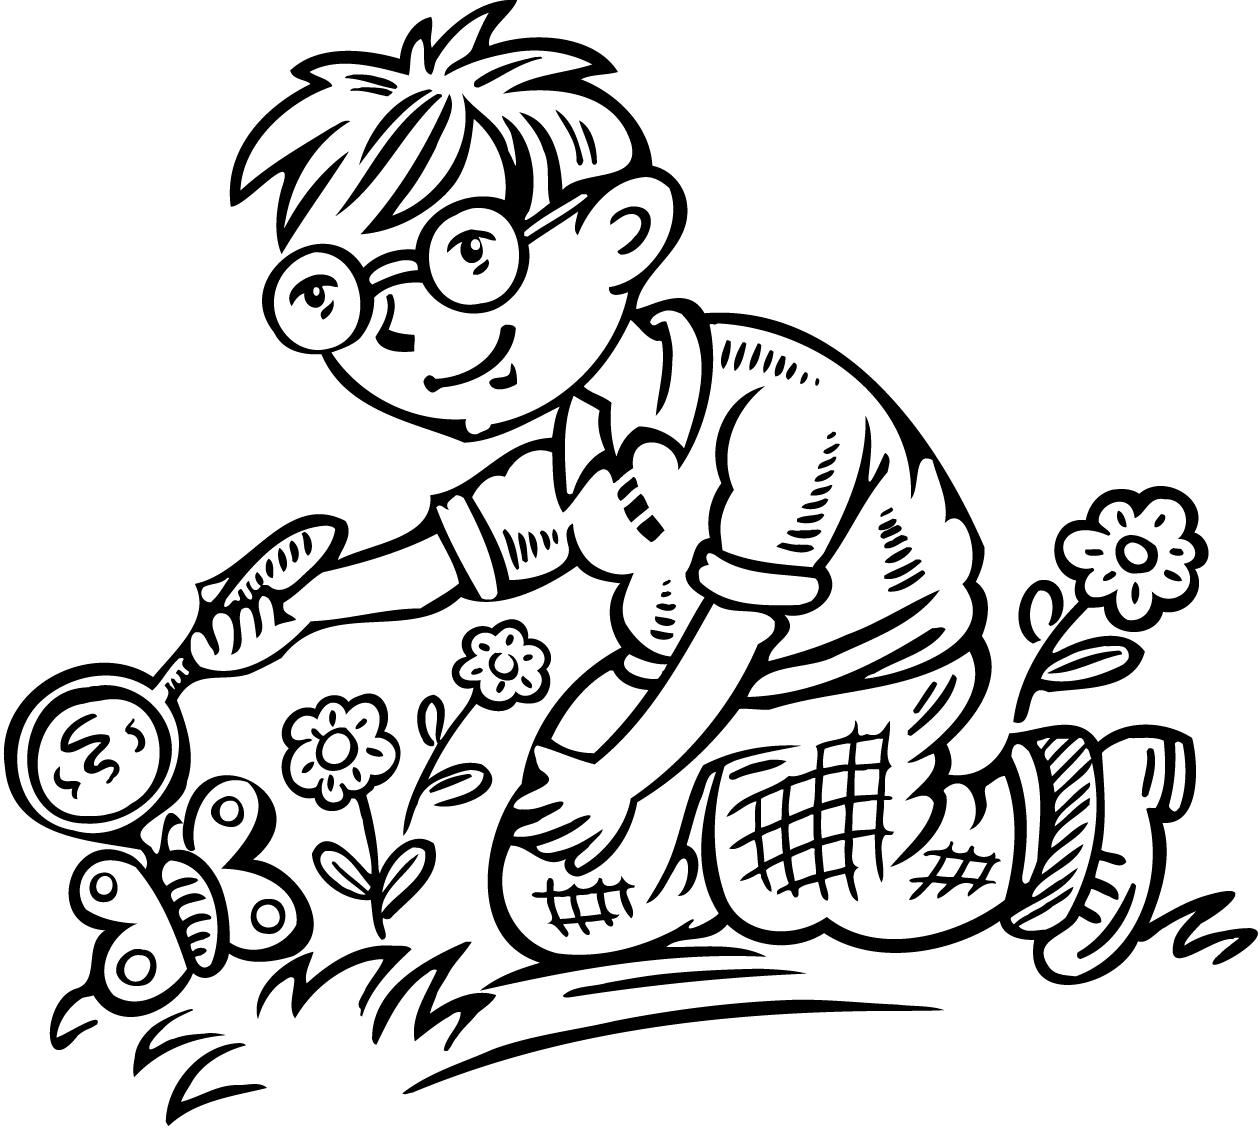 Coloring Sheet Of A Boy Looking At A Butterfly Coloring Sheets Magnifying Glass Butterfly